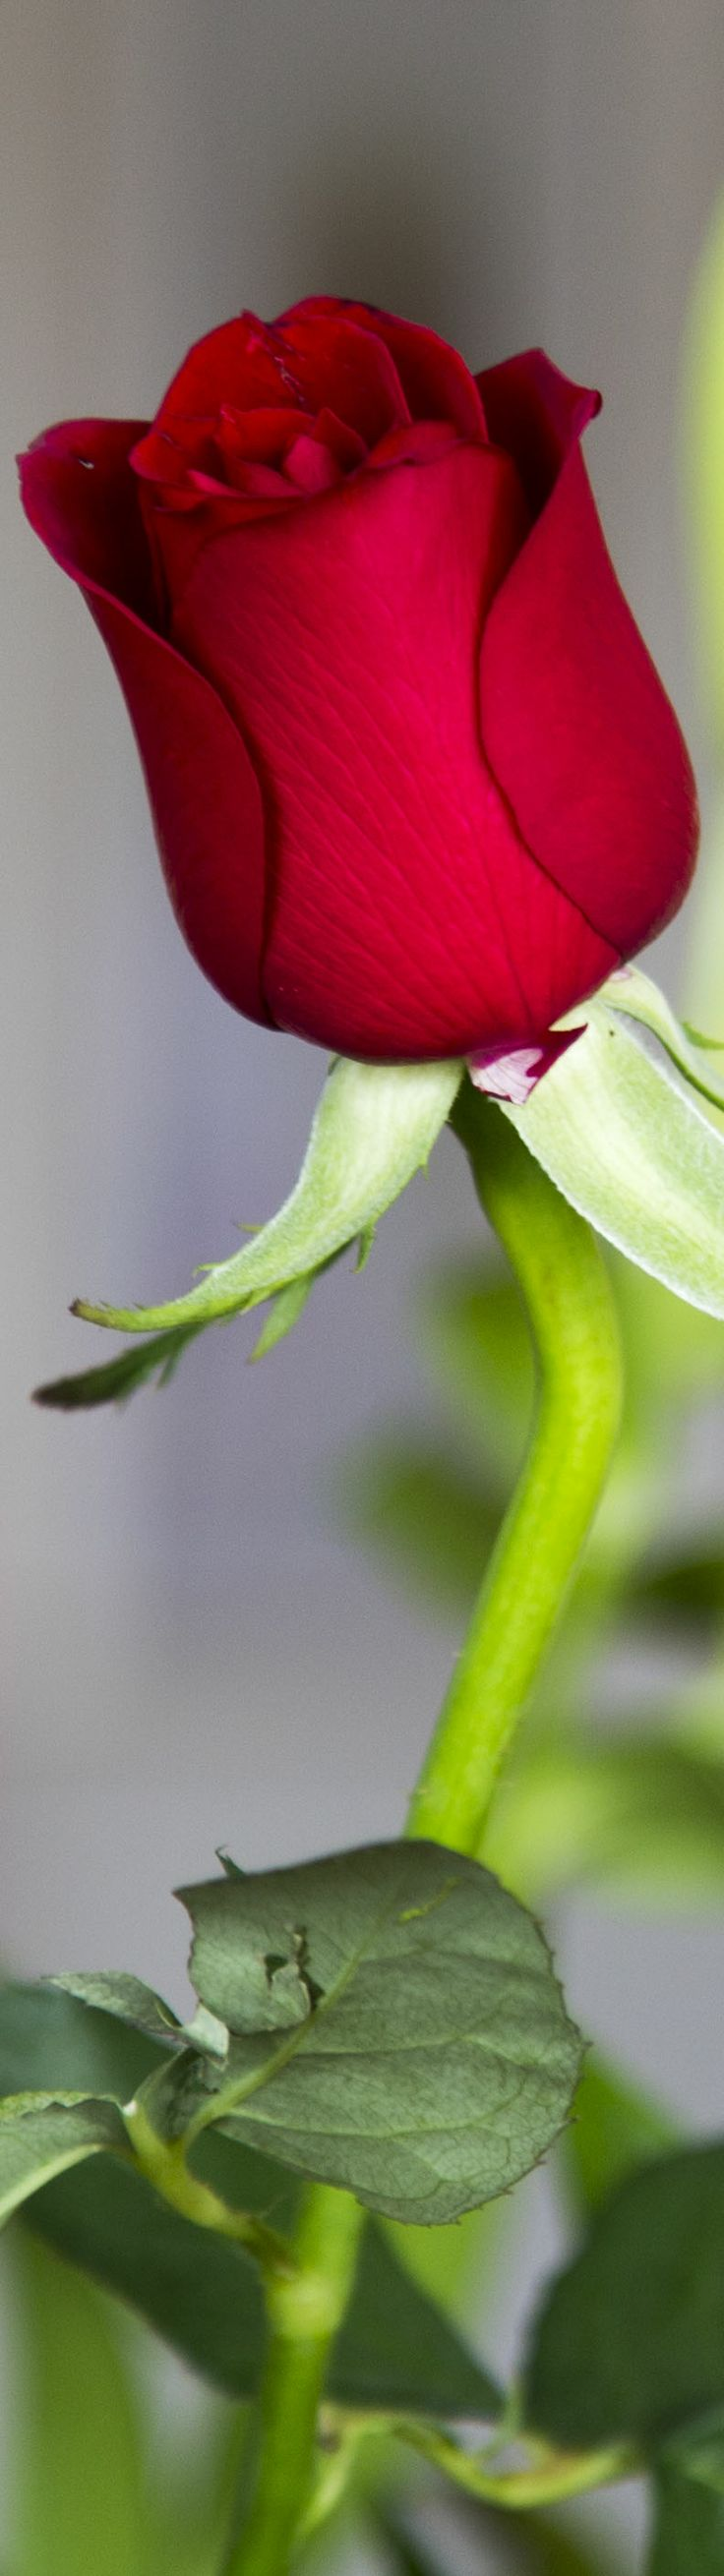 A single red rose via @vanlisana. #roses #romantic